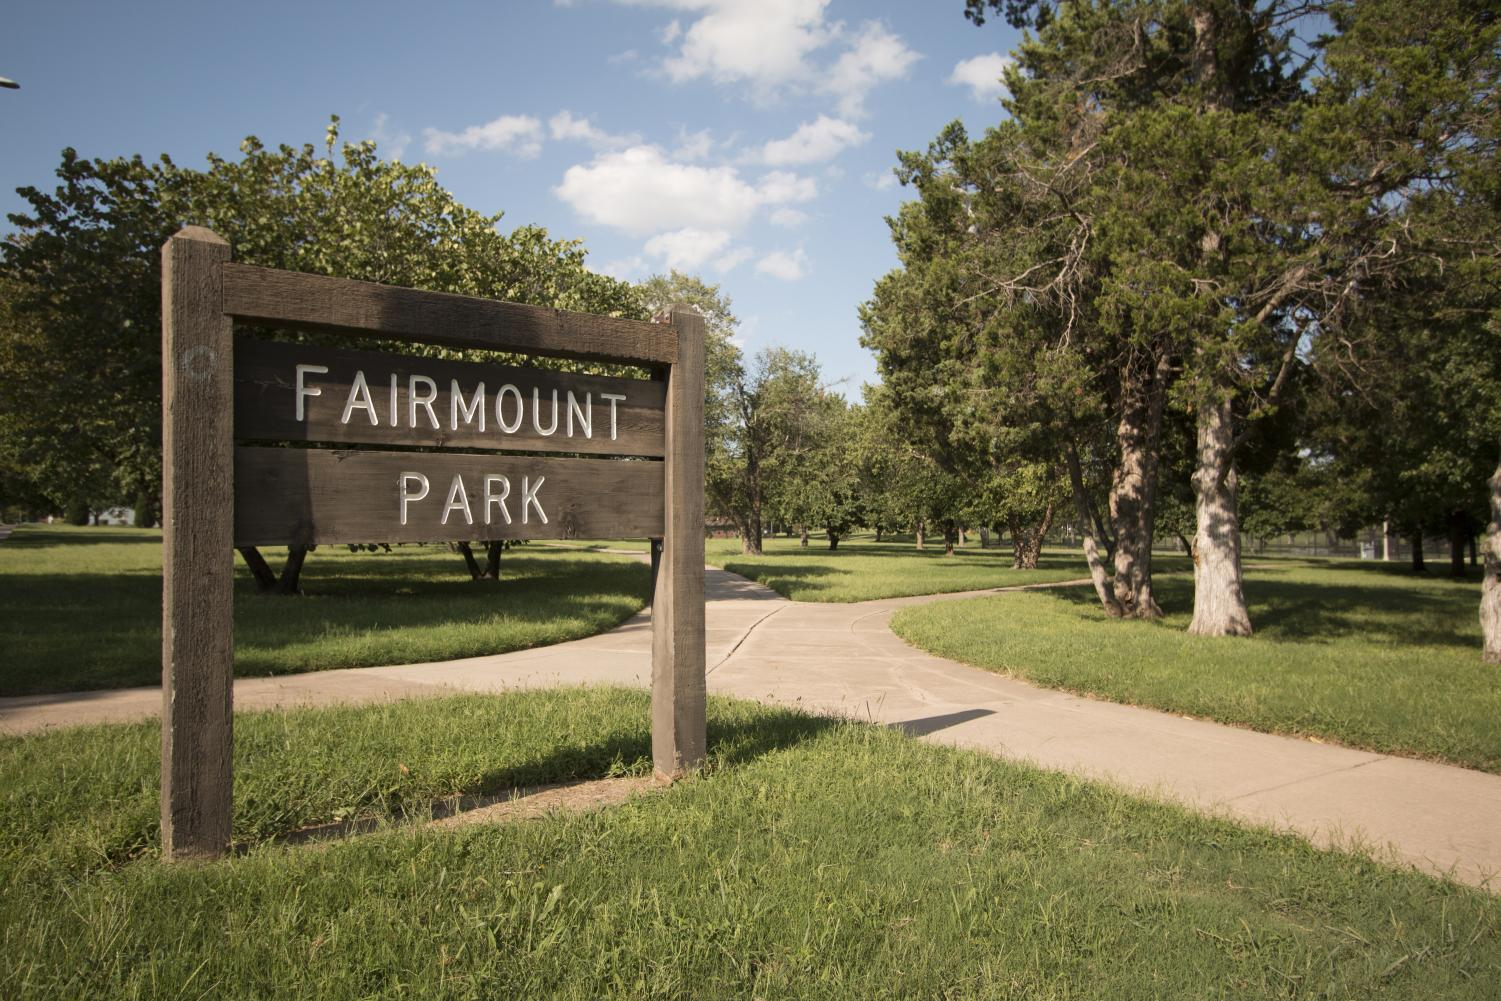 Fairmount Park is located just south of Wichita State's campus, across 17th Street. Police say a man was shot here early Saturday morning.